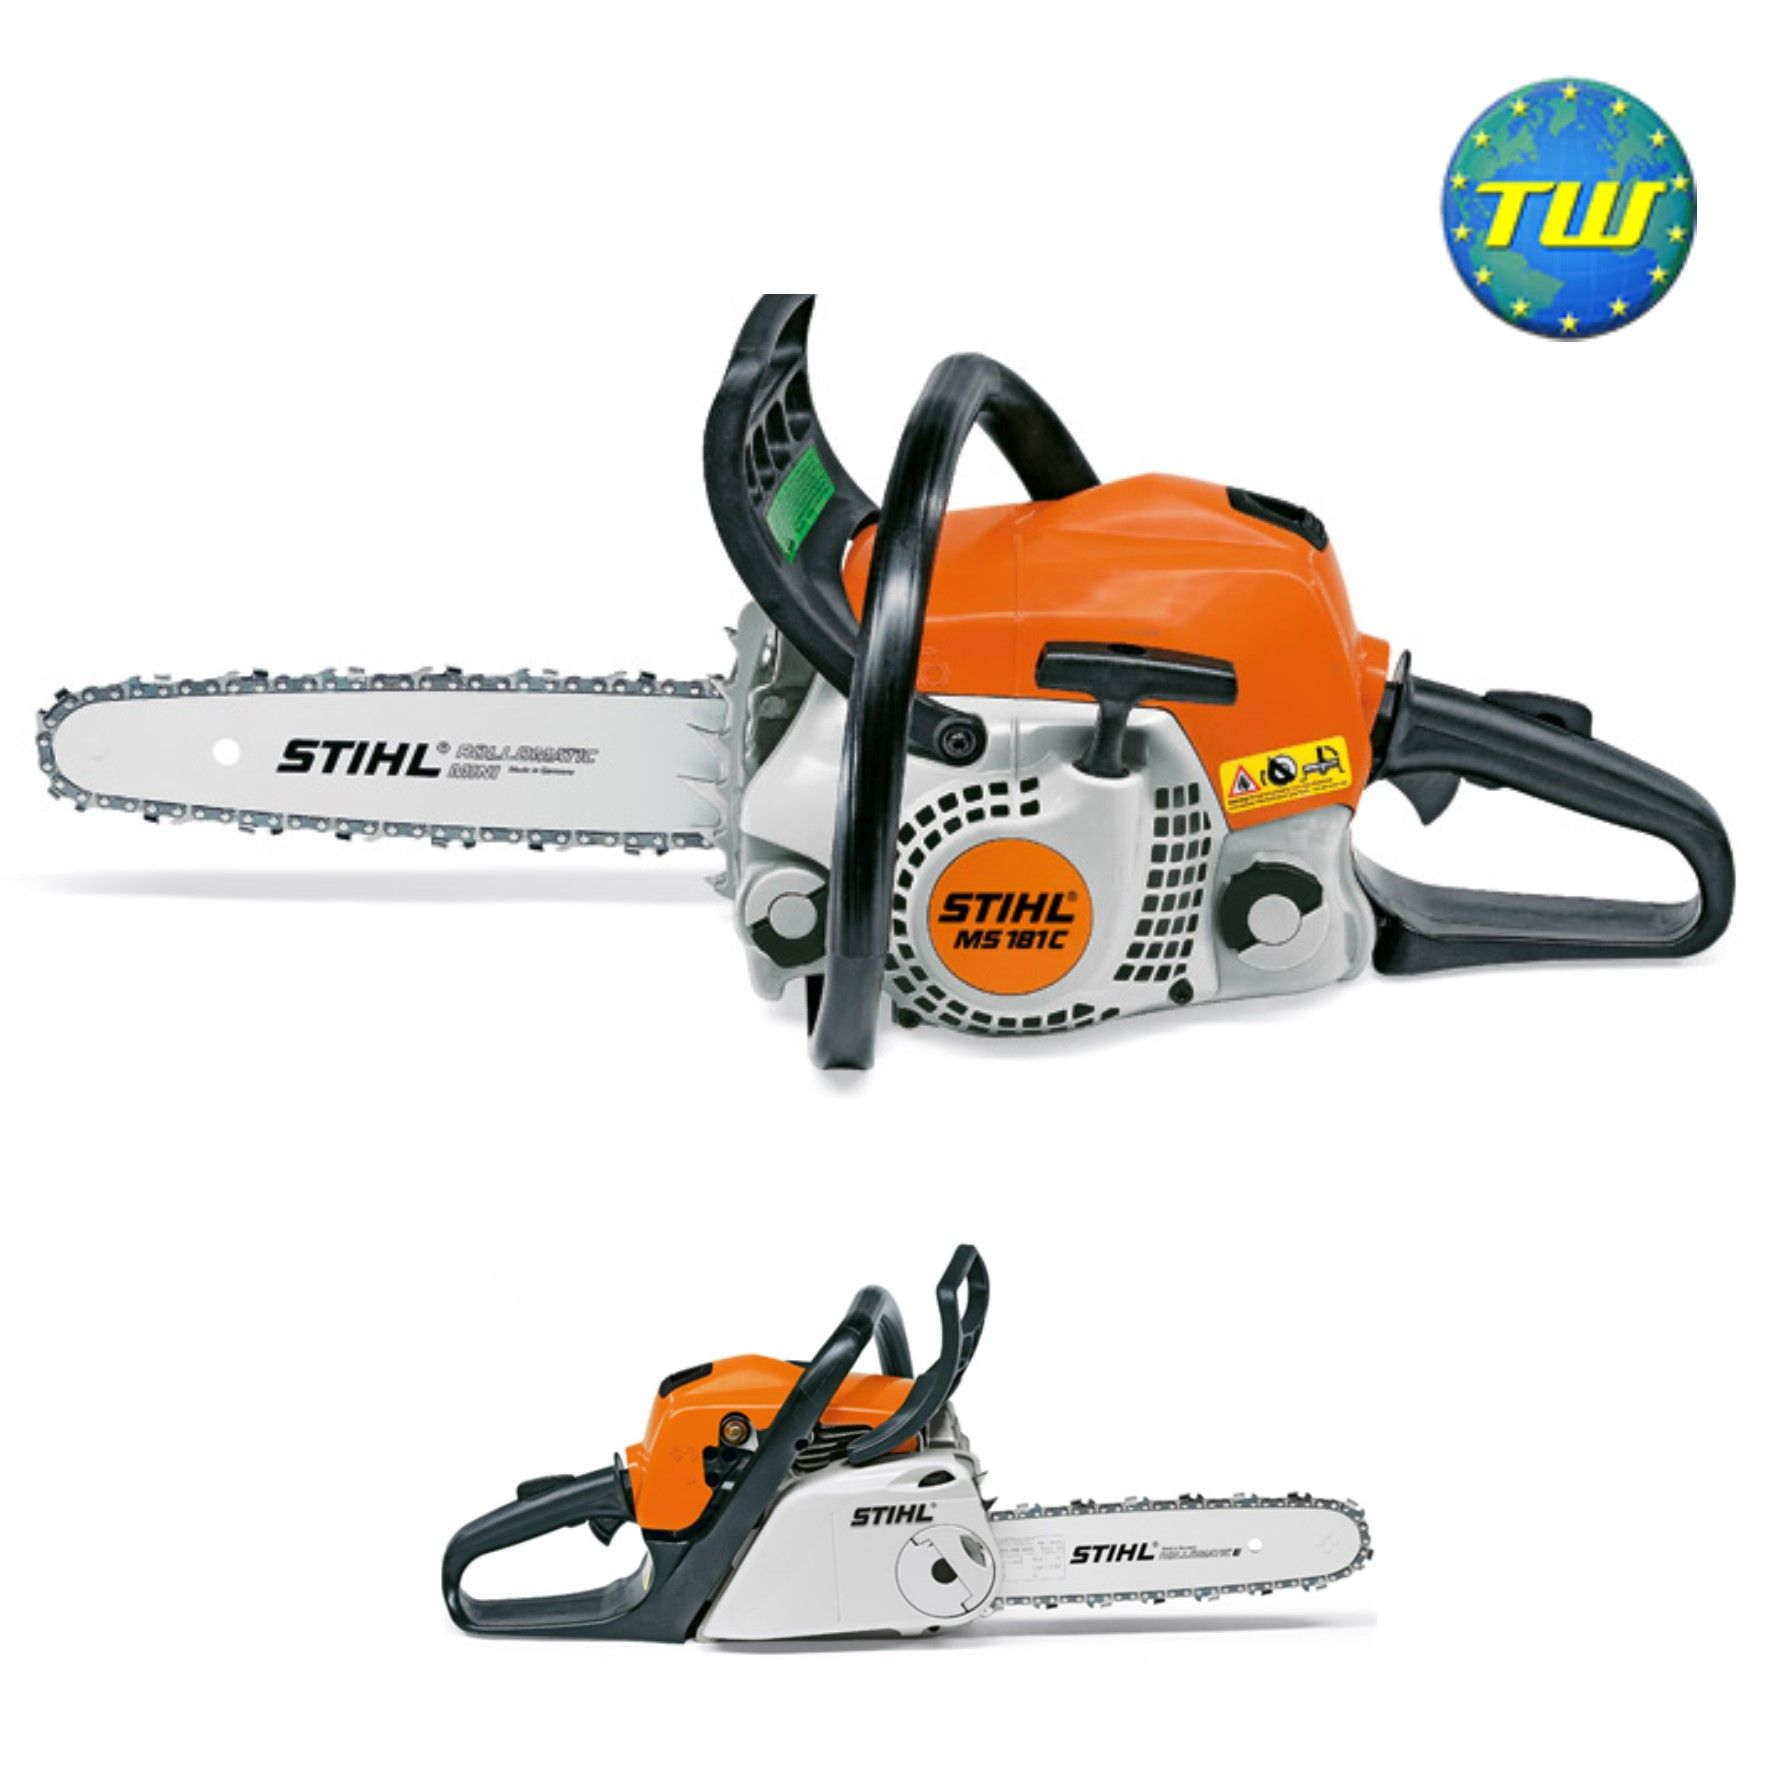 Stihl ms181c be 16 16 petrol chainsaw 11392000154 has additional stihl ms181c be 16 16 petrol chainsaw 11392000154 has additional comfort features keyboard keysfo Image collections